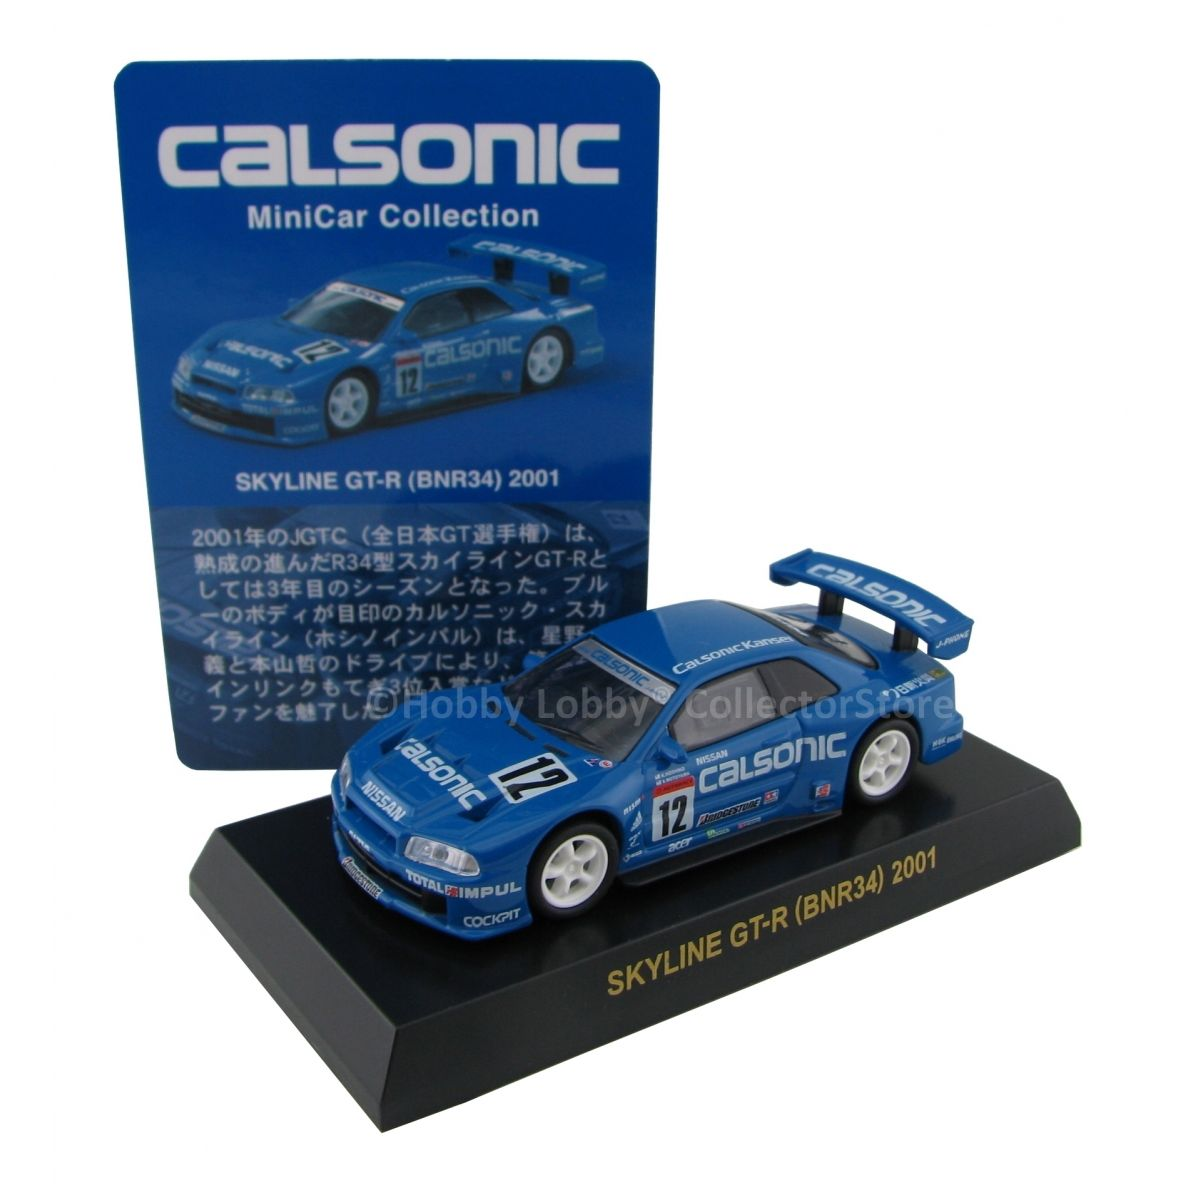 Kyosho - Calsonic Collection - Skyline GTS-R (BNR34) 2001